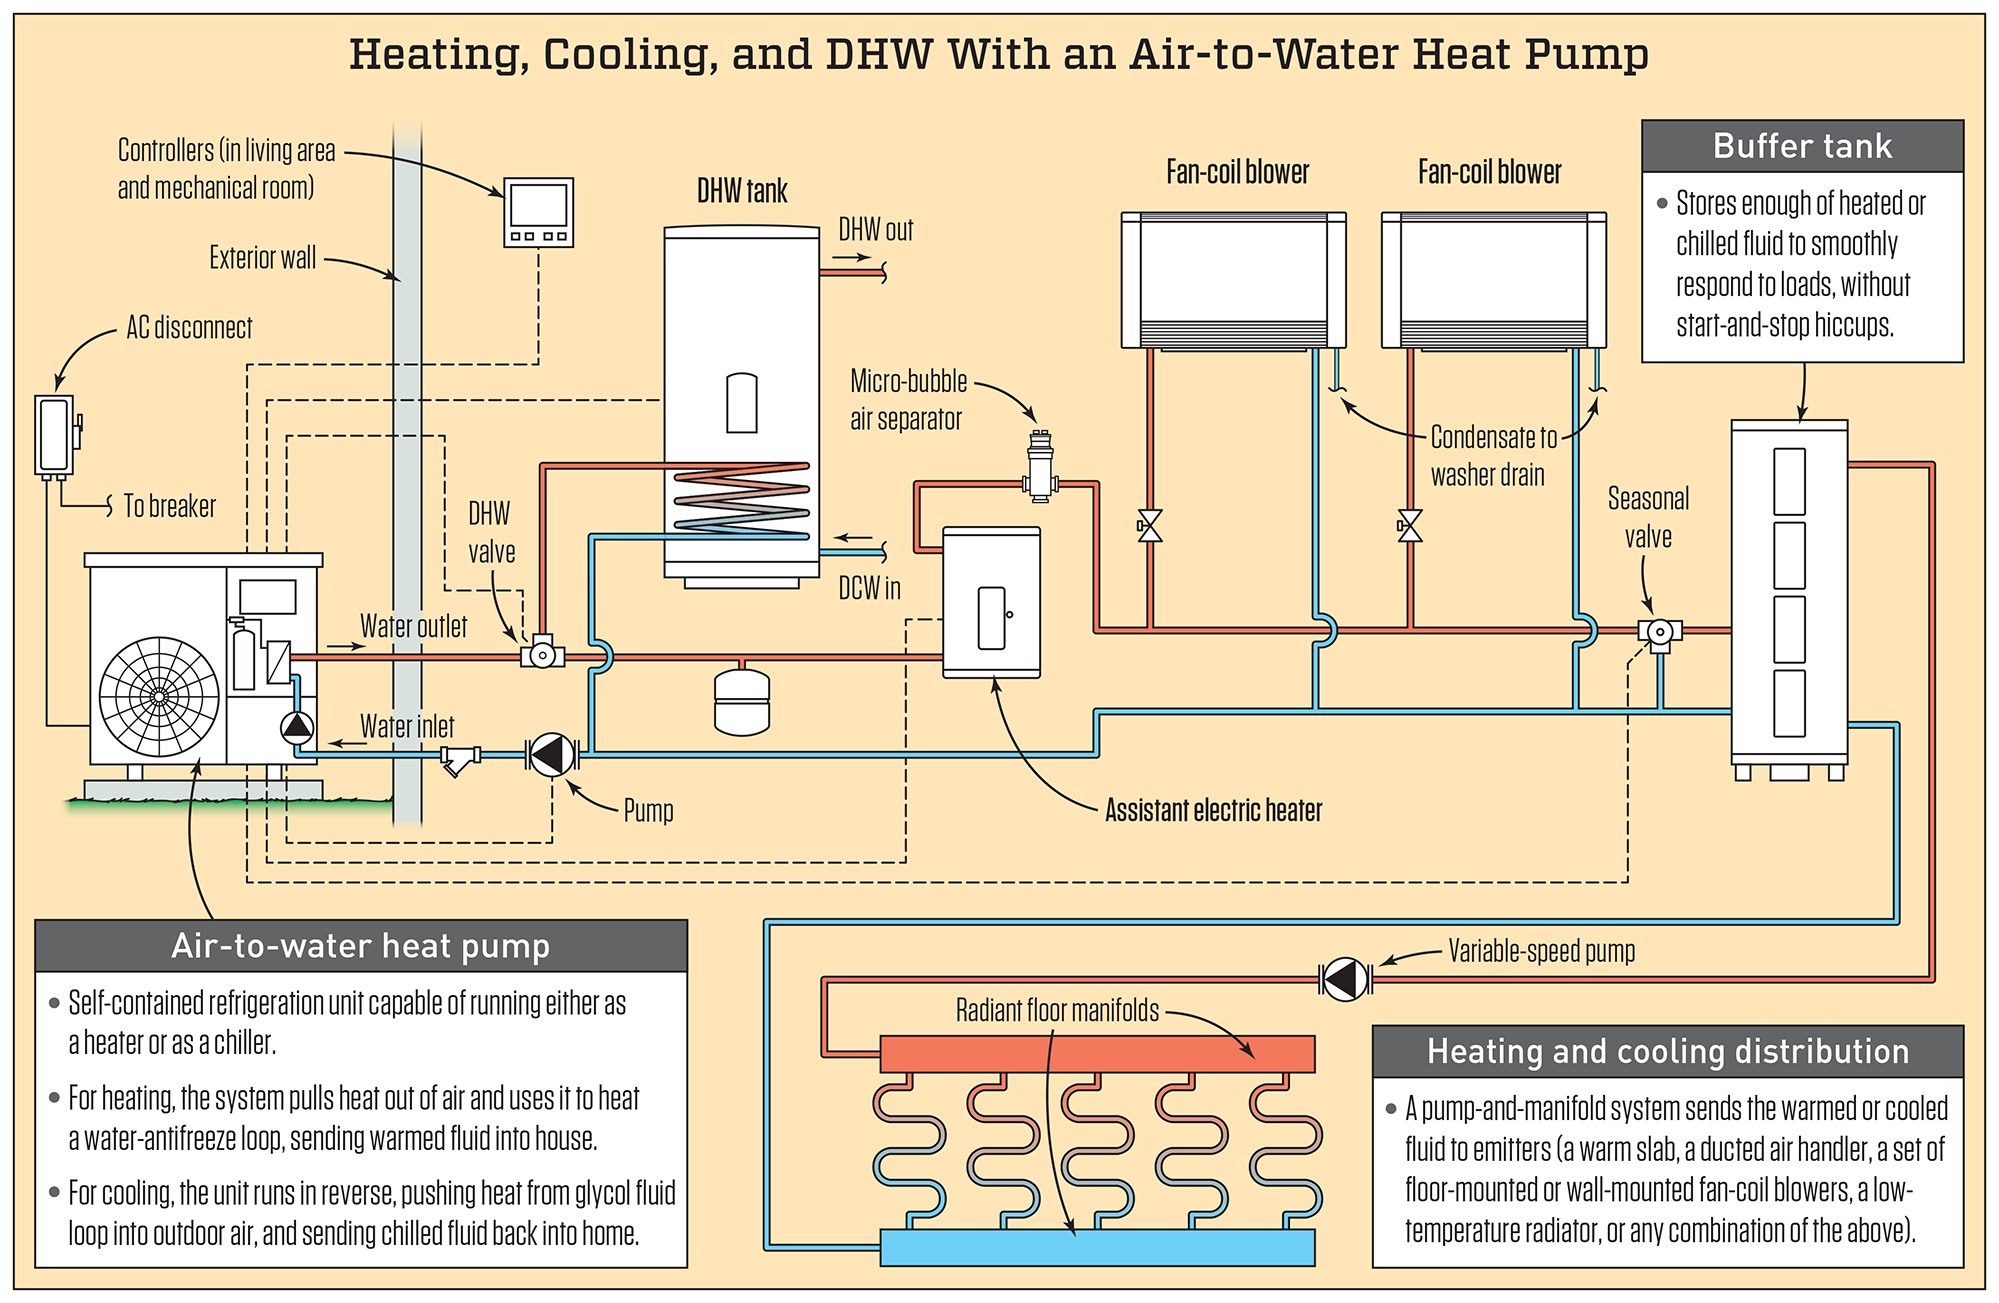 Car Heating System Diagram Air to Water Heat Pumps Jlc Line Of Car Heating System Diagram